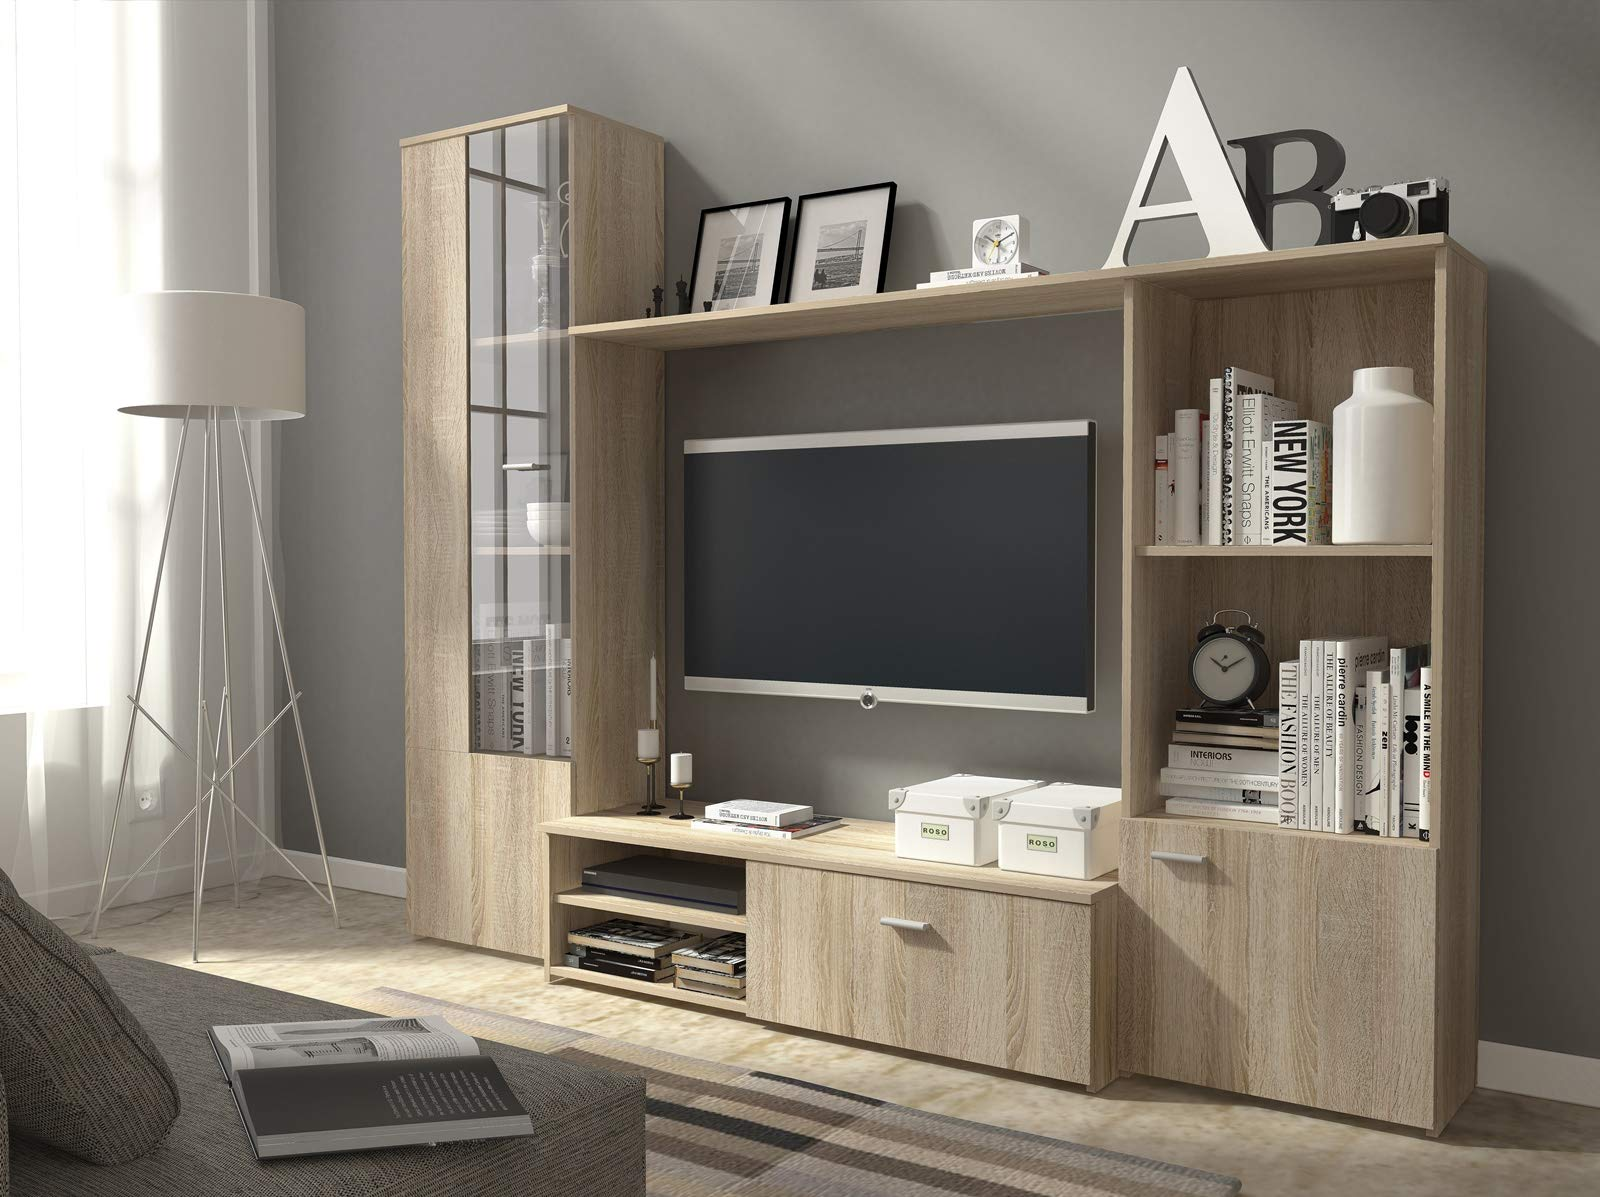 living room wall units amazon co uk rh amazon co uk wall unit design in living room wall units living room uk